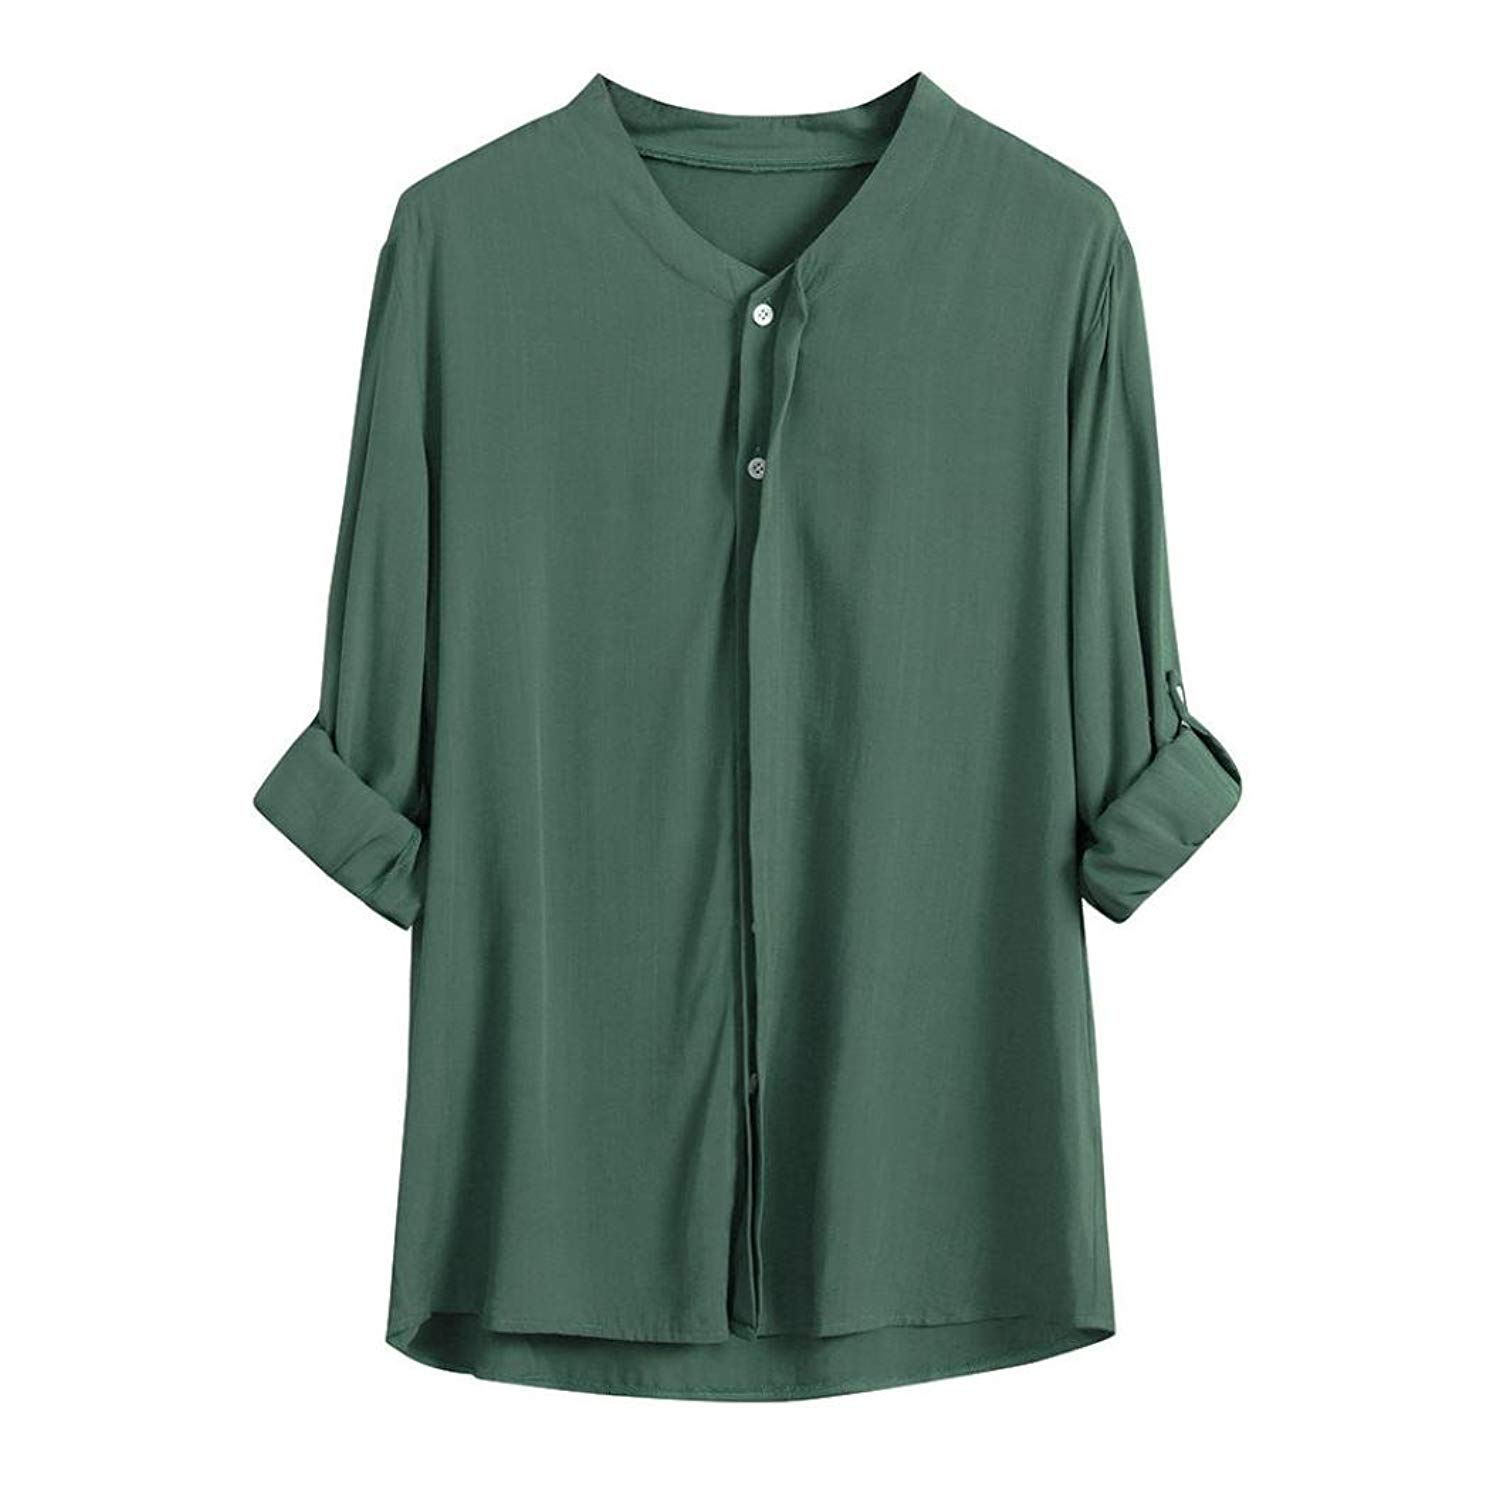 62025277 Get Quotations · Howstar Women's Casual T-Shirt Solid Color Blouse with Button  Shirts Loose Fit Plain T